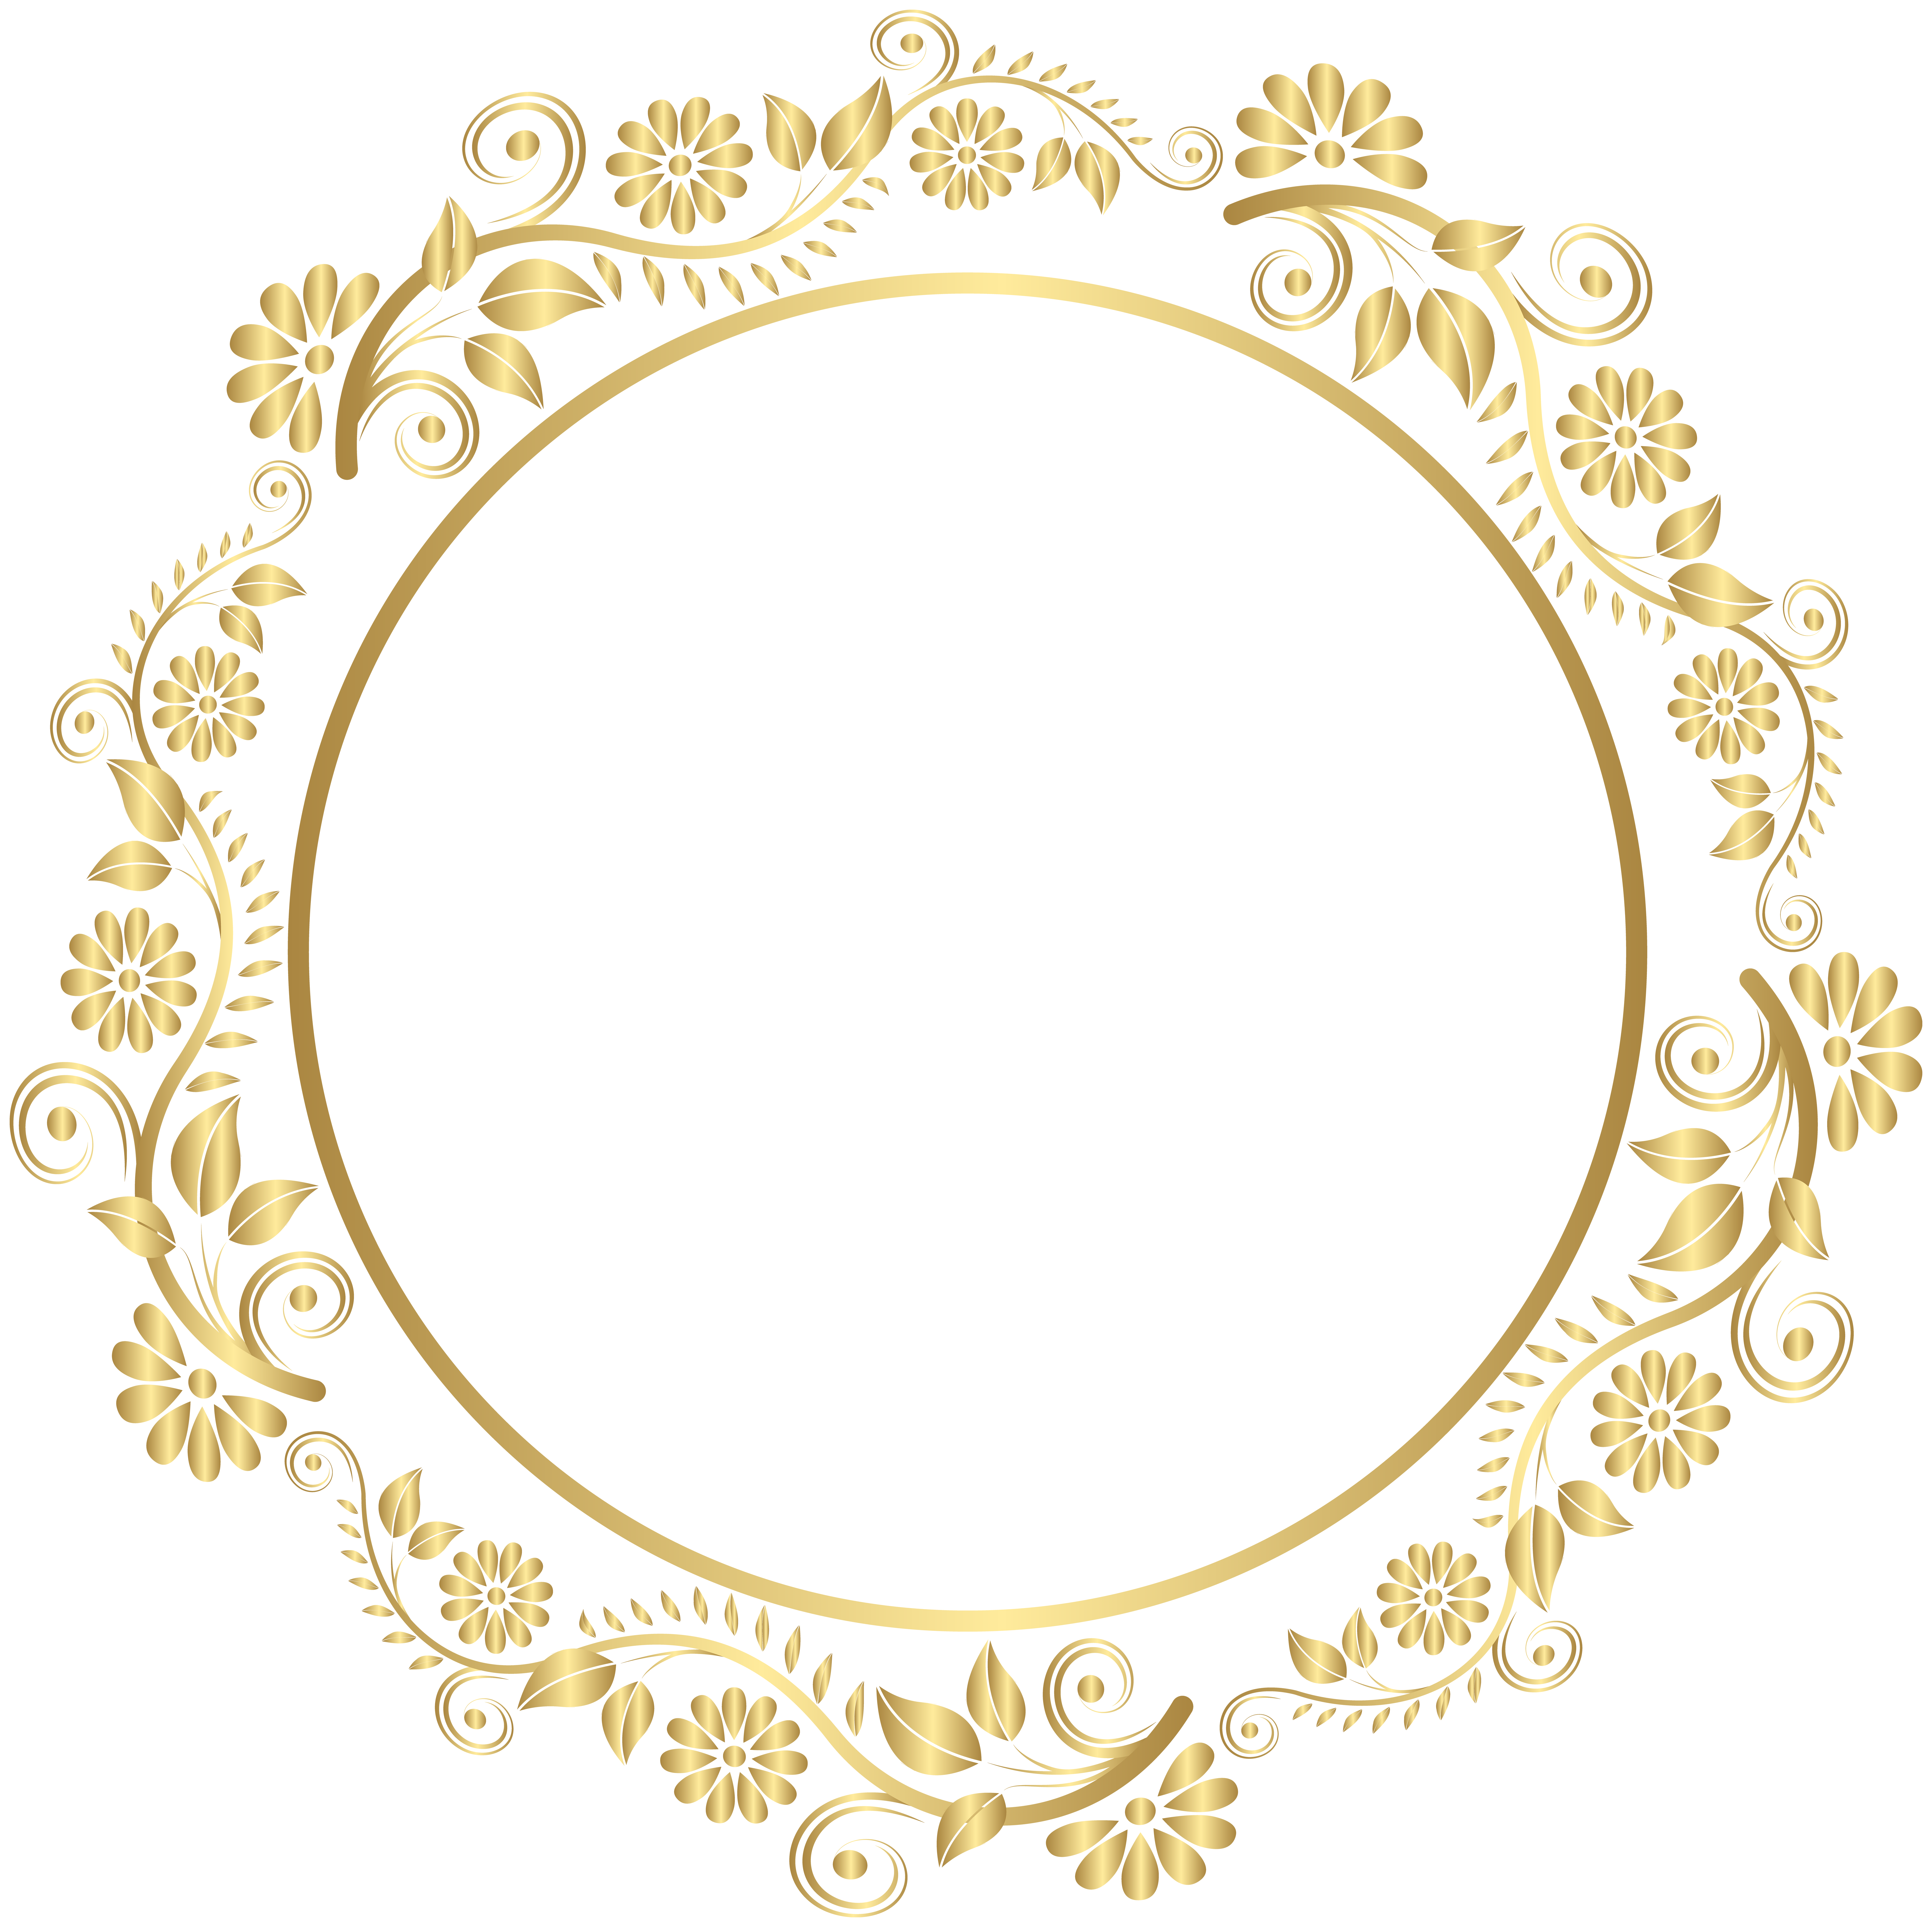 Round border png. Gold frame deco clip